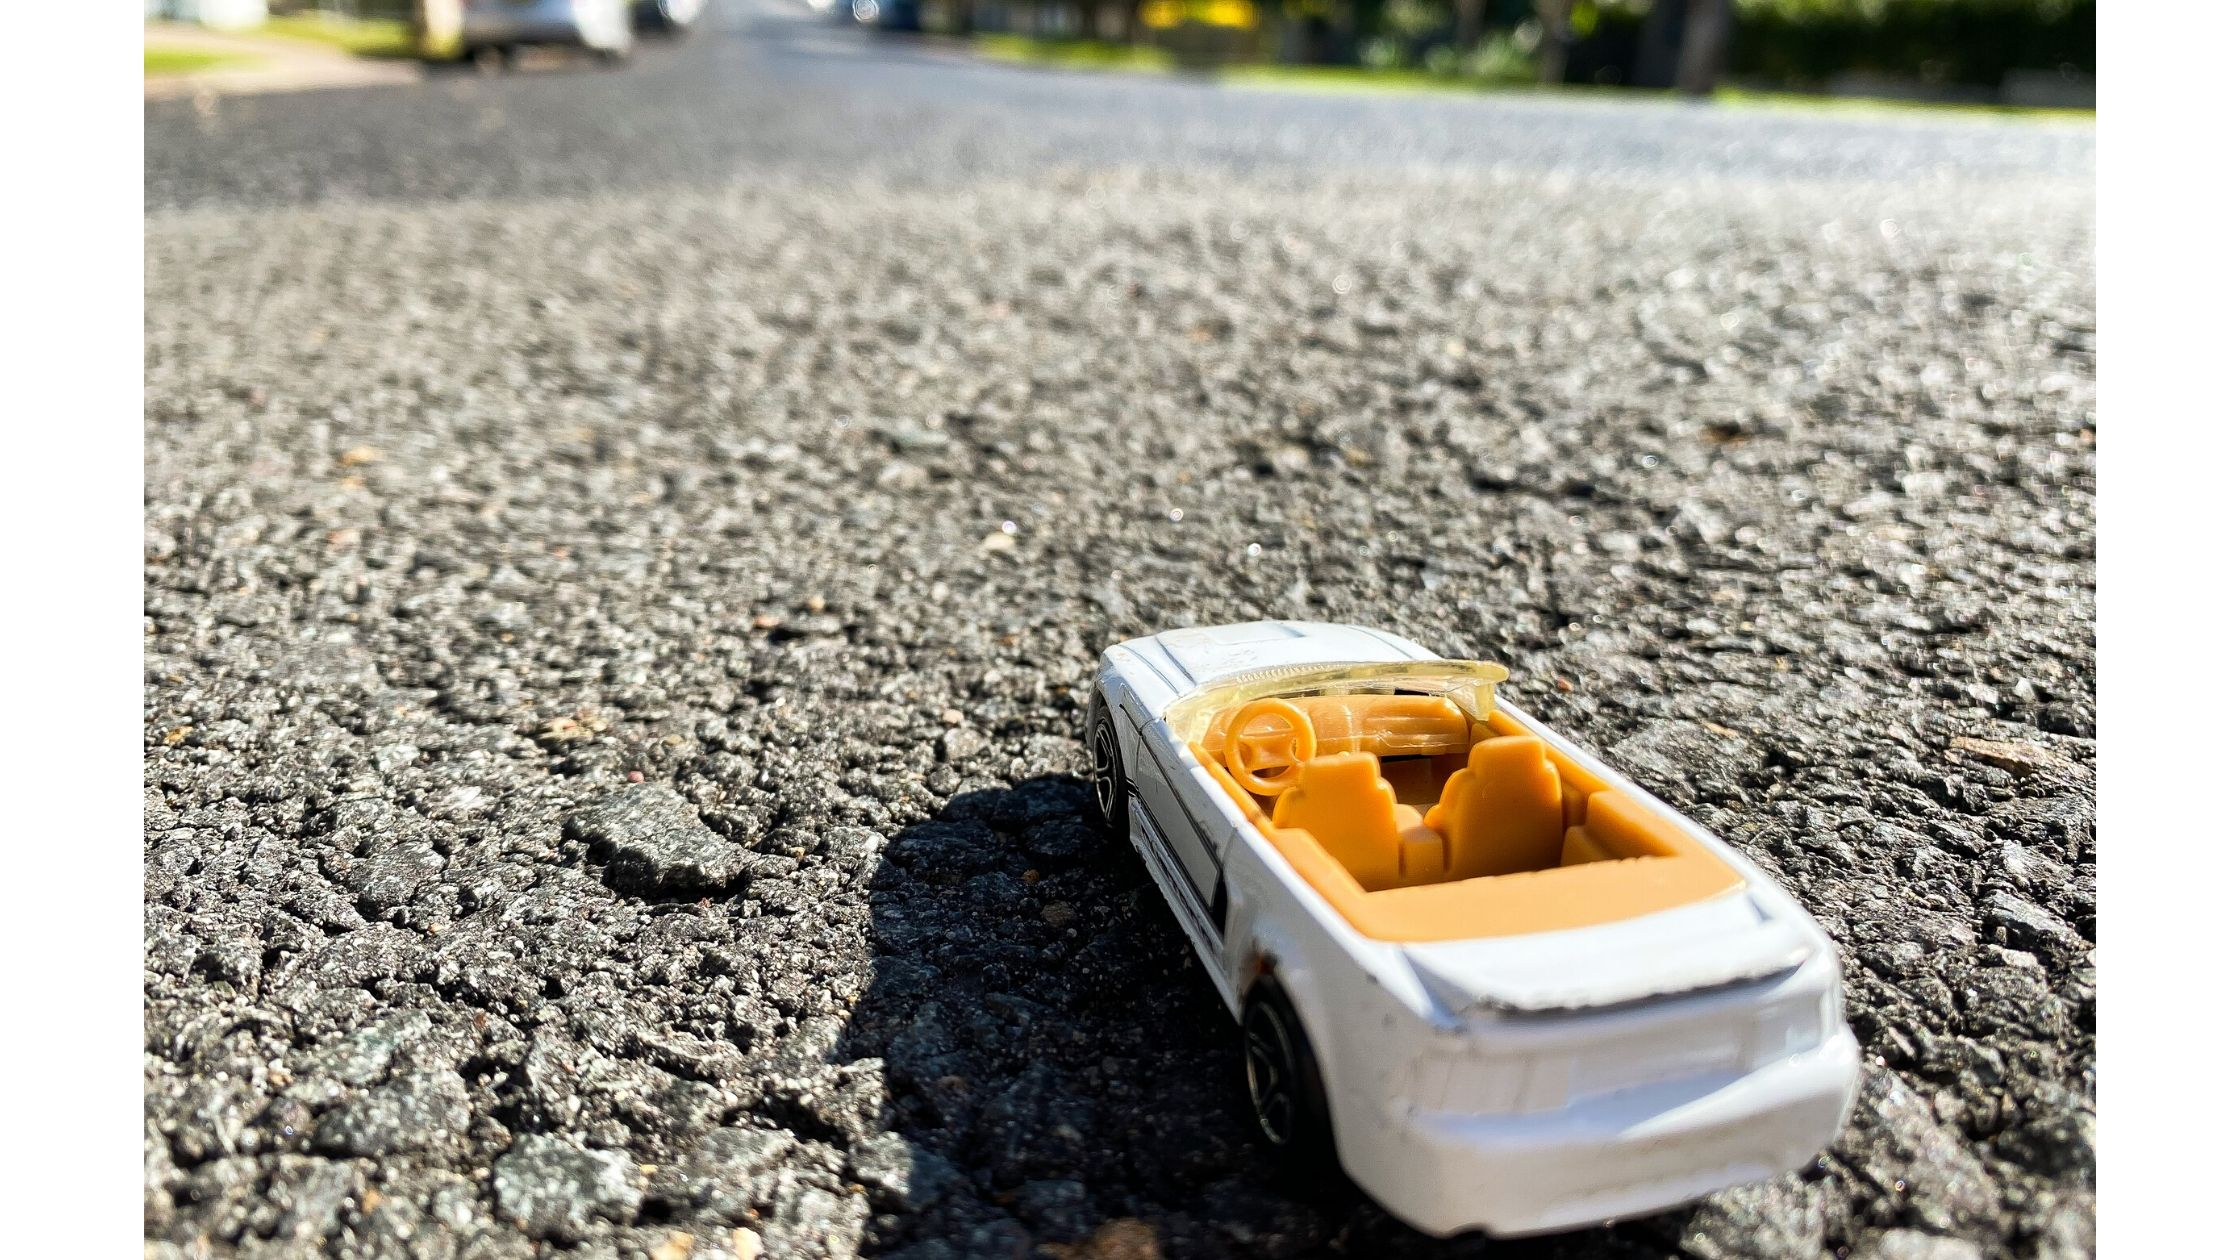 Toy Car on the Road